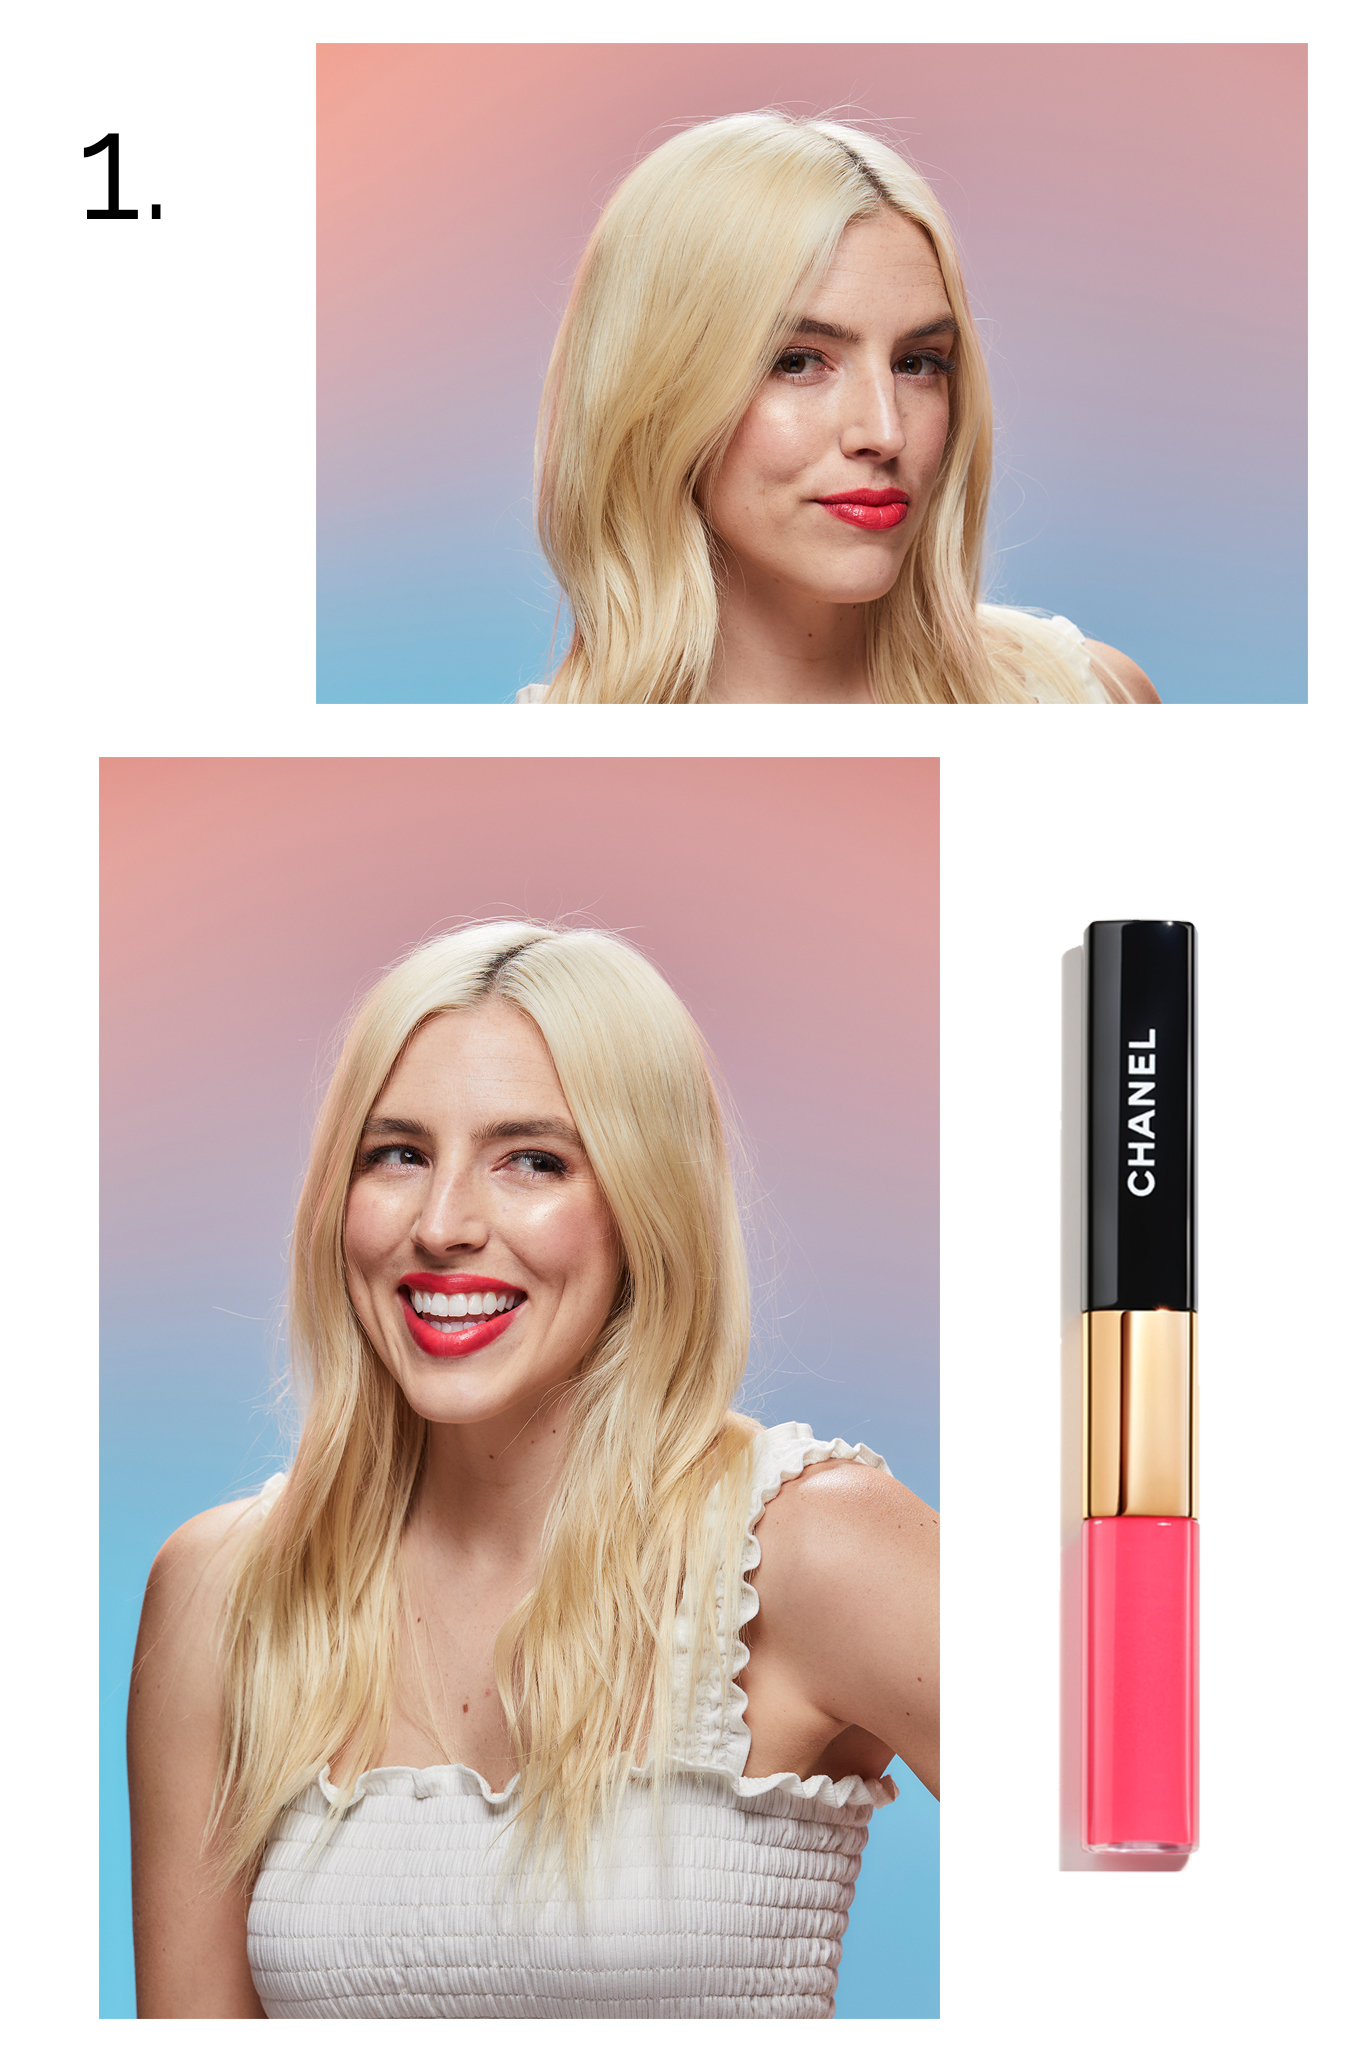 MY 5 MUST HAVE LIPSTICKS FOR SPRING & SUMMER